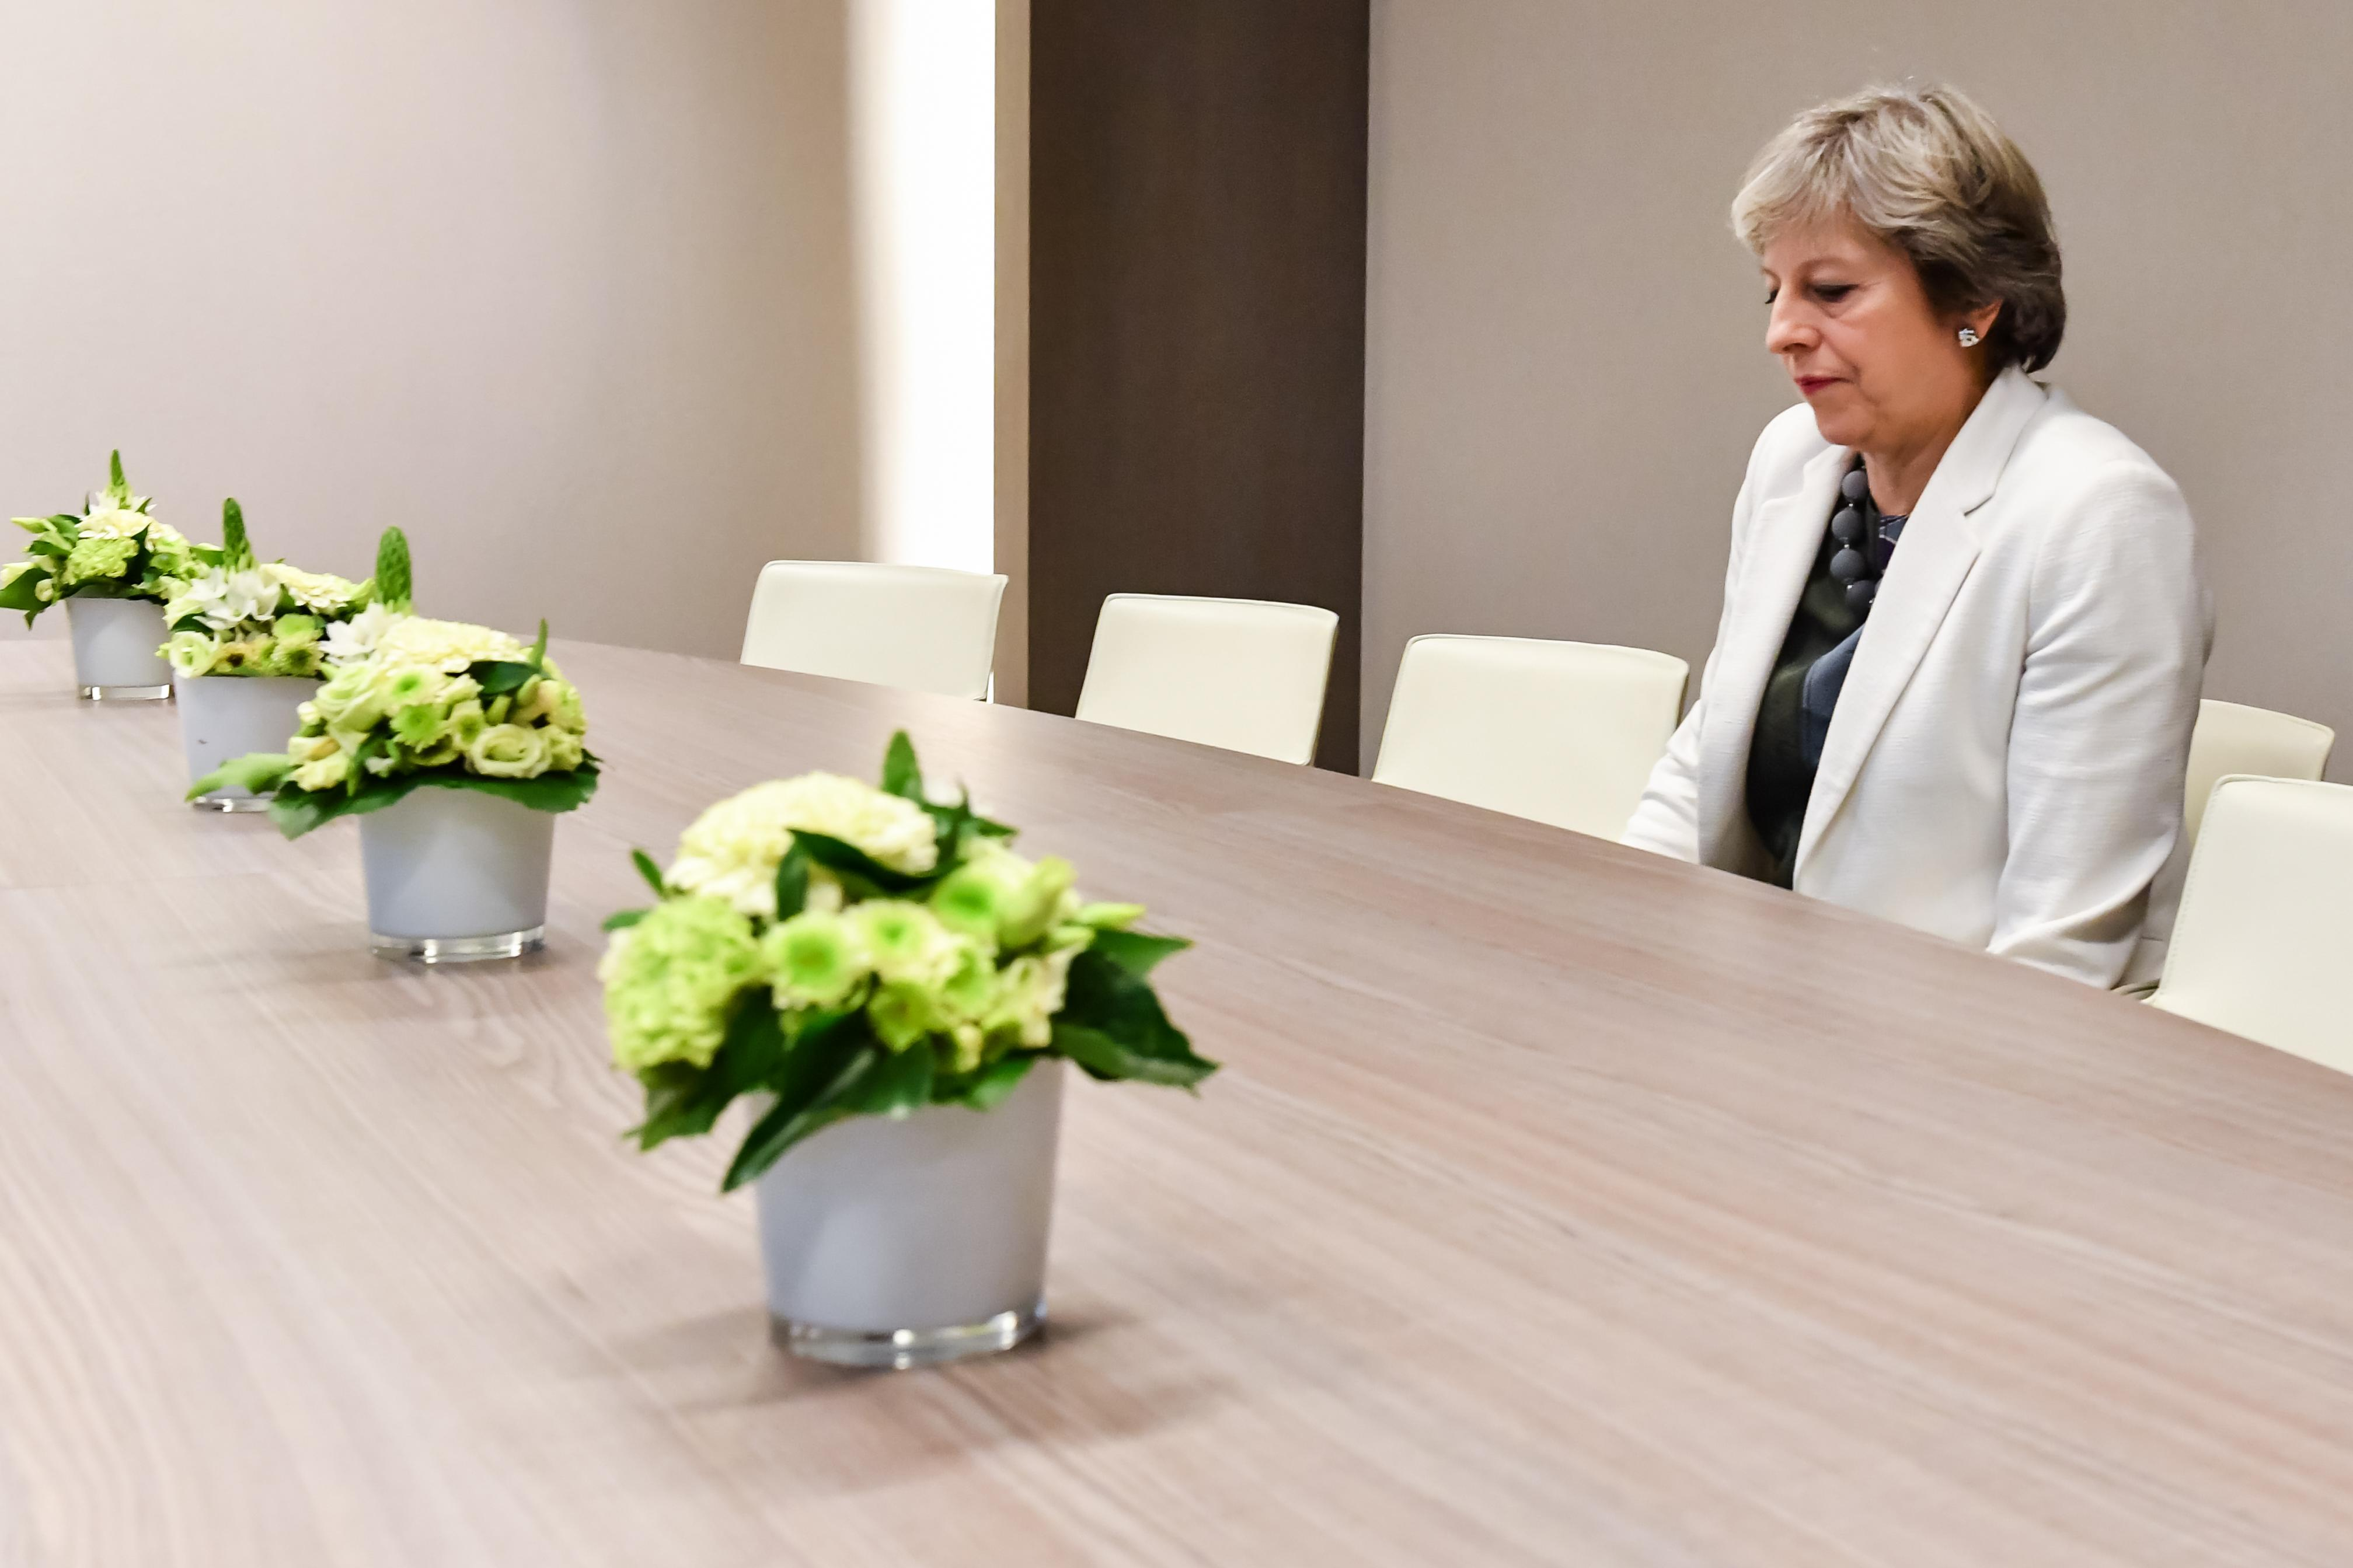 A Photo of Lone Theresa May Arrived. The Internet Could Not Ignore the Meme Opportunities.